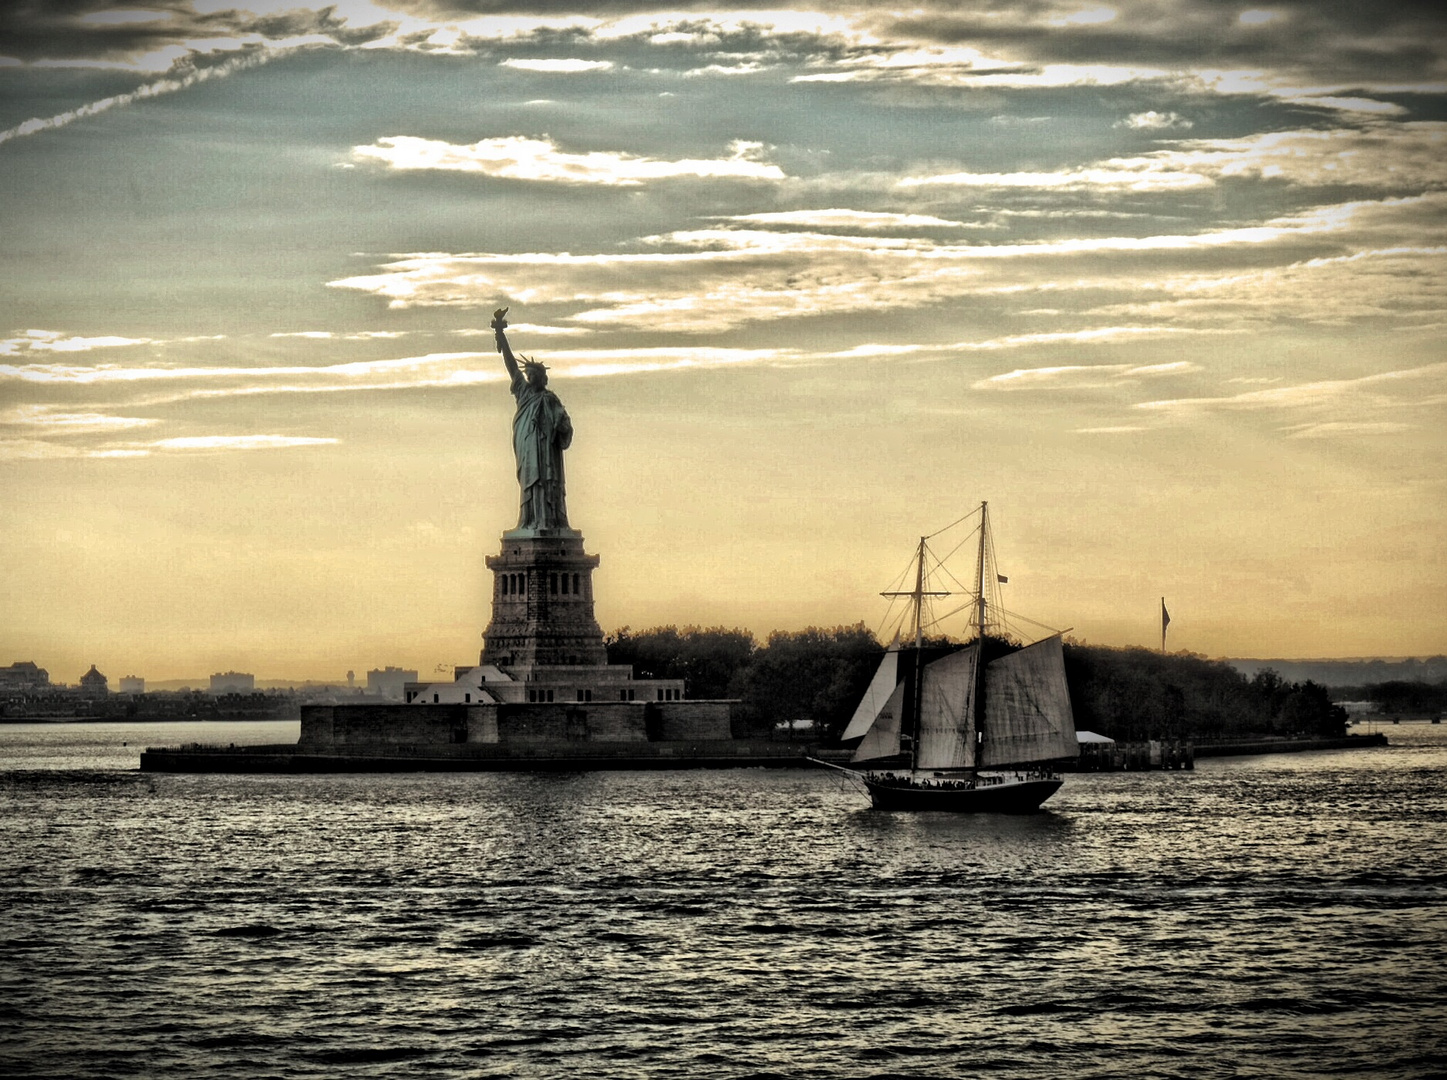 Statue of Liberty, NYC